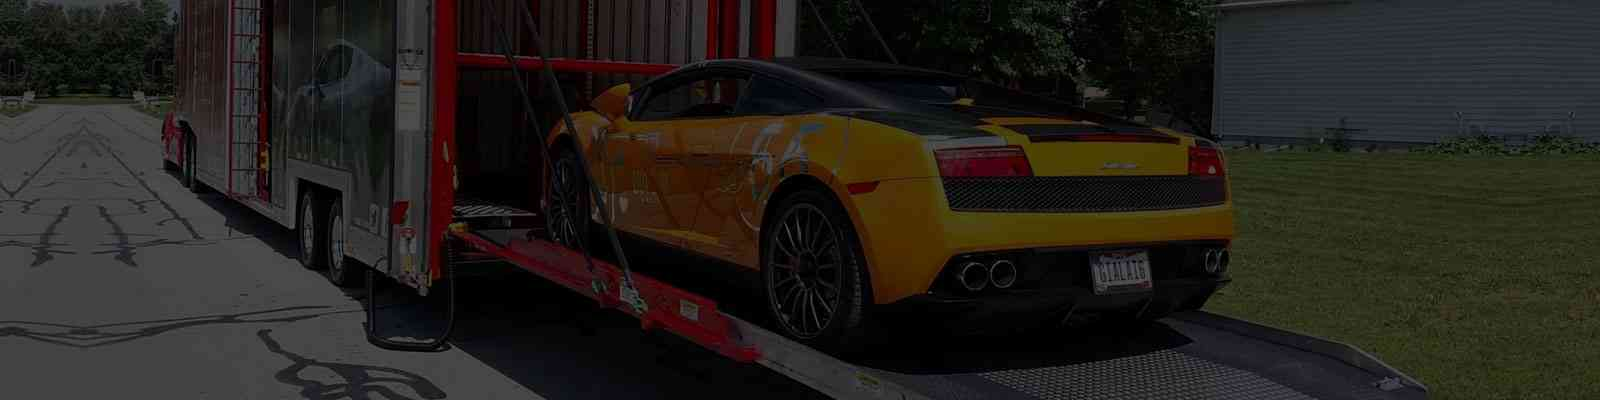 Car Carriers Services India